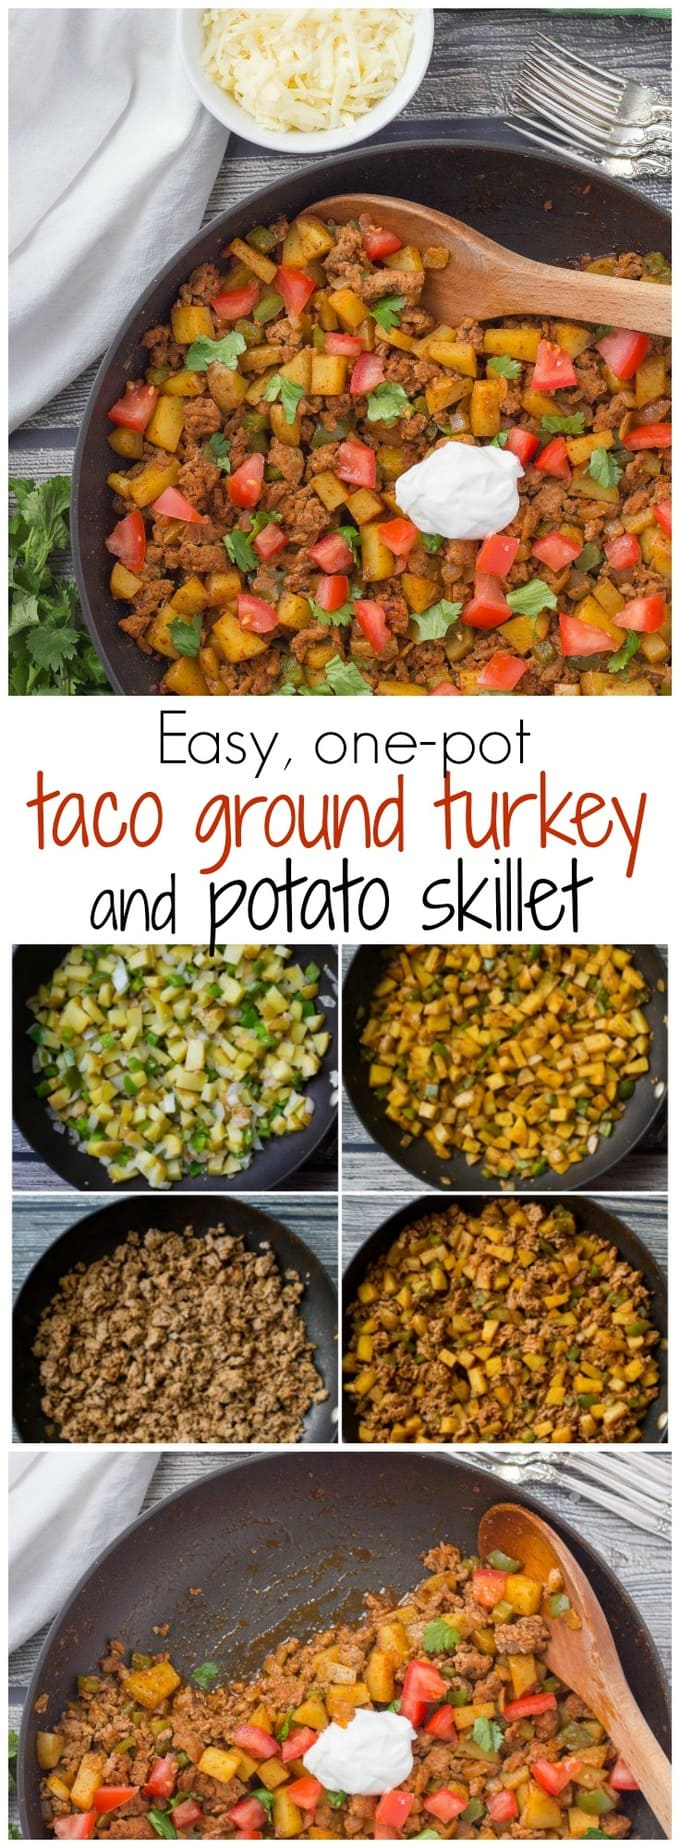 Easy, healthy ground turkey tacos with potatoes - a one-pot dinner!